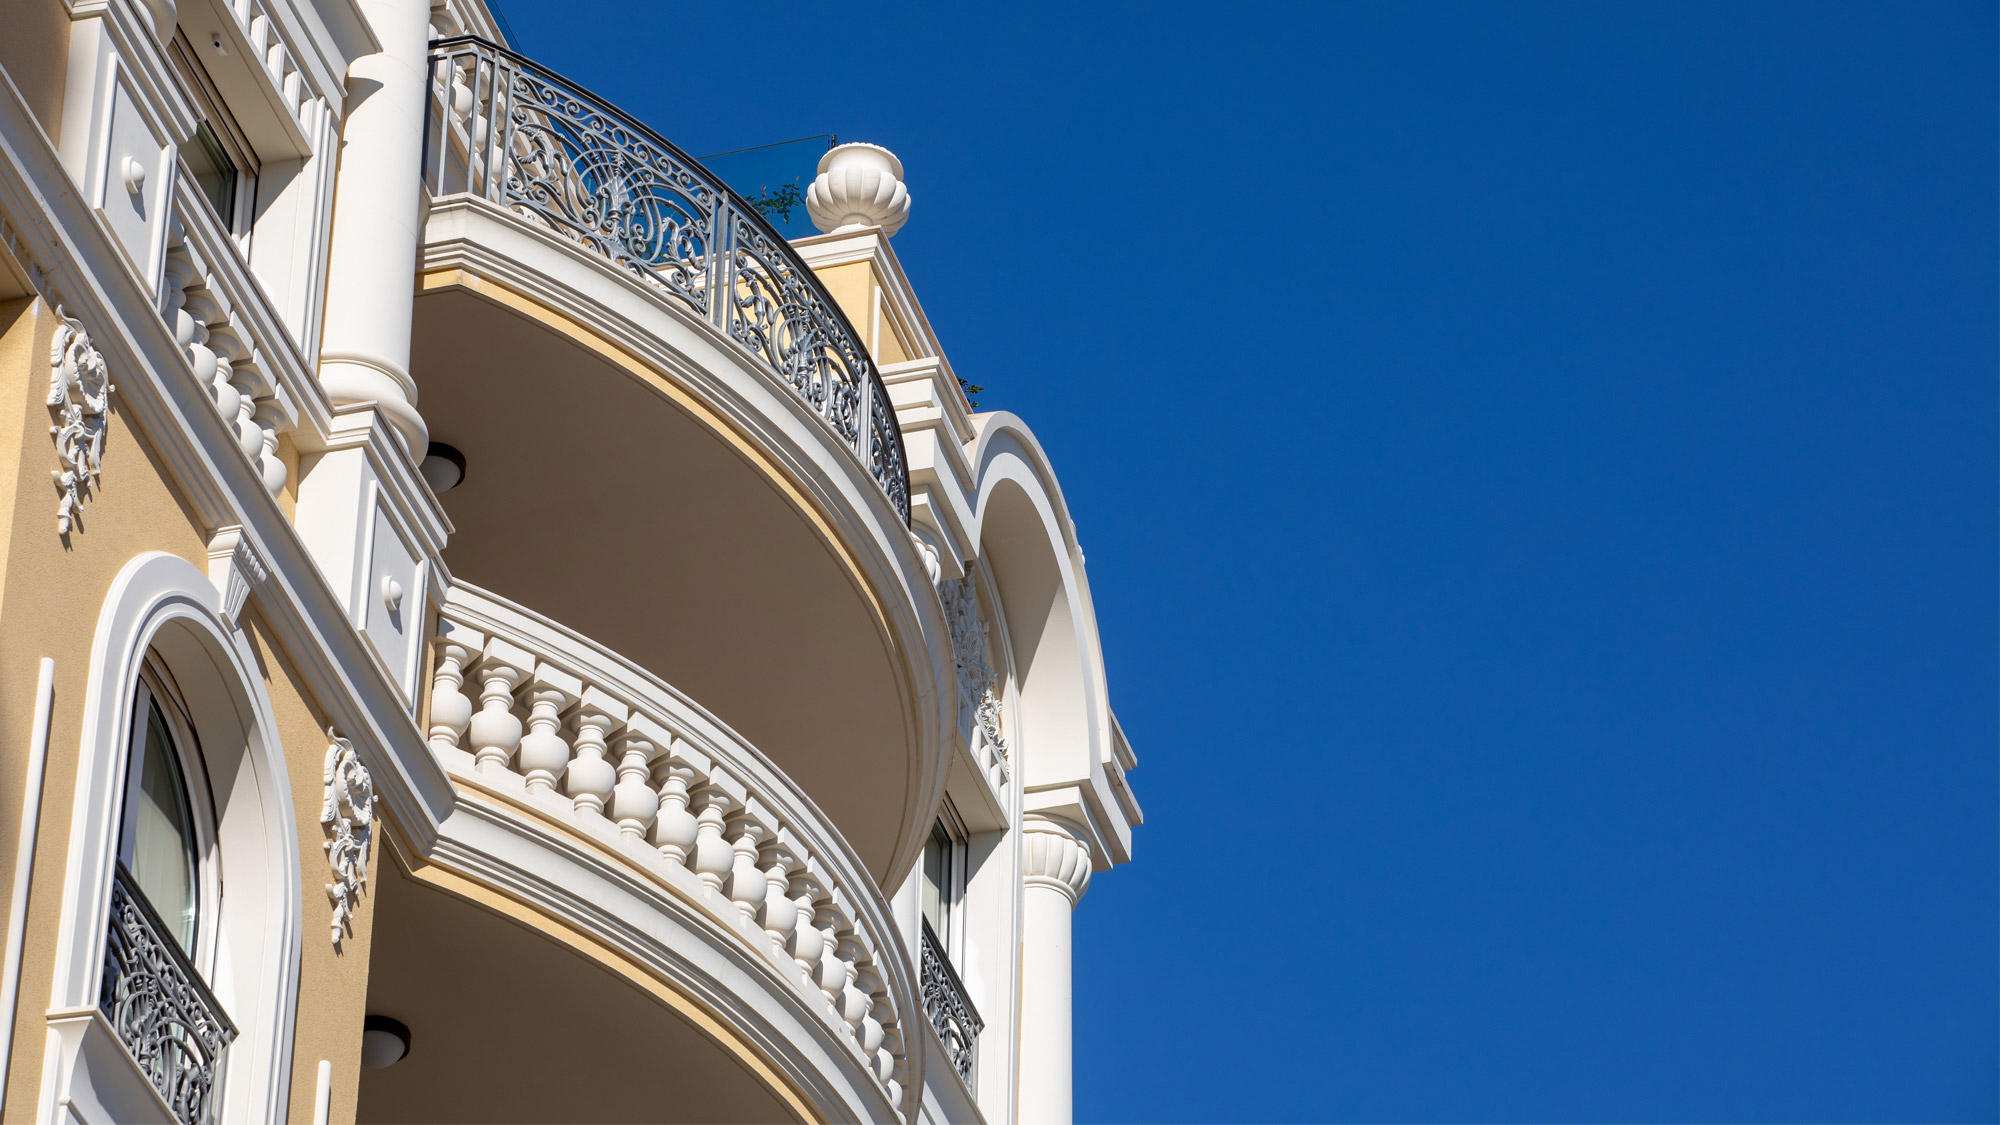 Flats to rent in Monaco in bourgeois buildings in Monaco with blue sky background